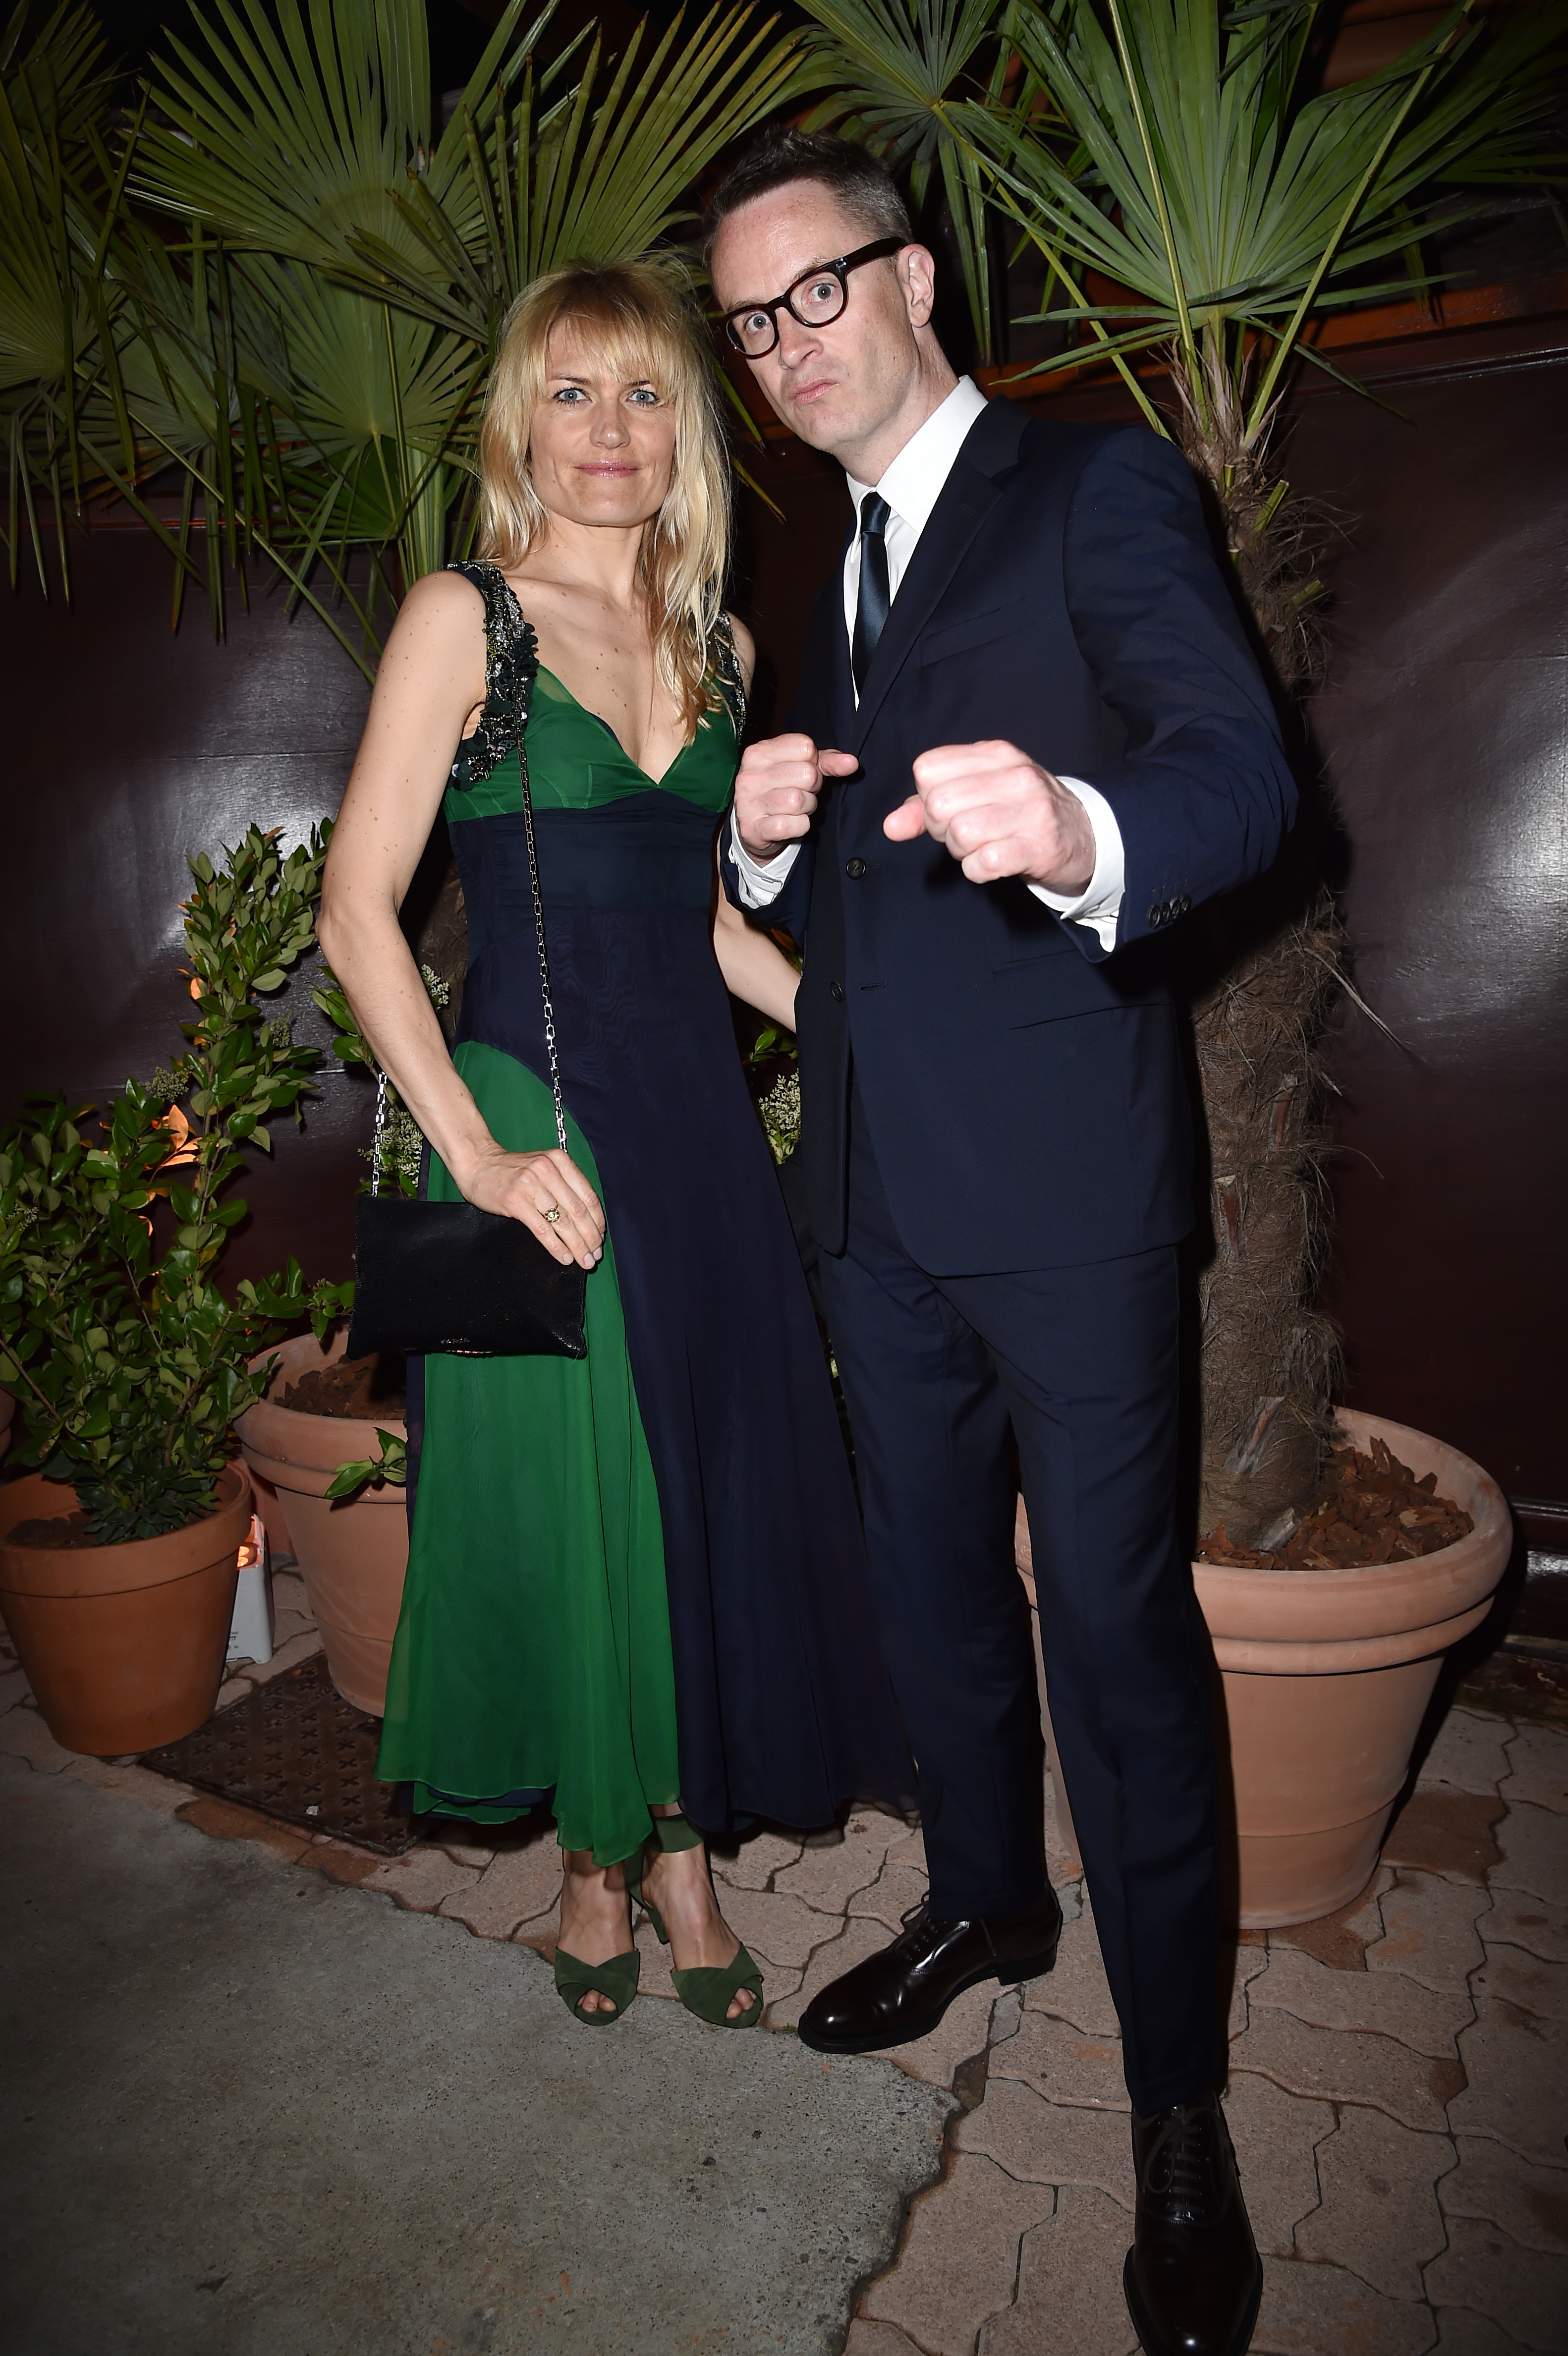 CANNES, FRANCE - MAY 22:  Liv Corfixen and Nicolas Winding Refn attend Prada Private Dinner during the 70th annual Cannes Film Festival at Restaurant Fred L'Ecailler on May 22, 2017 in Cannes, France.  (Photo by Jacopo Raule/Getty Images for Prada)